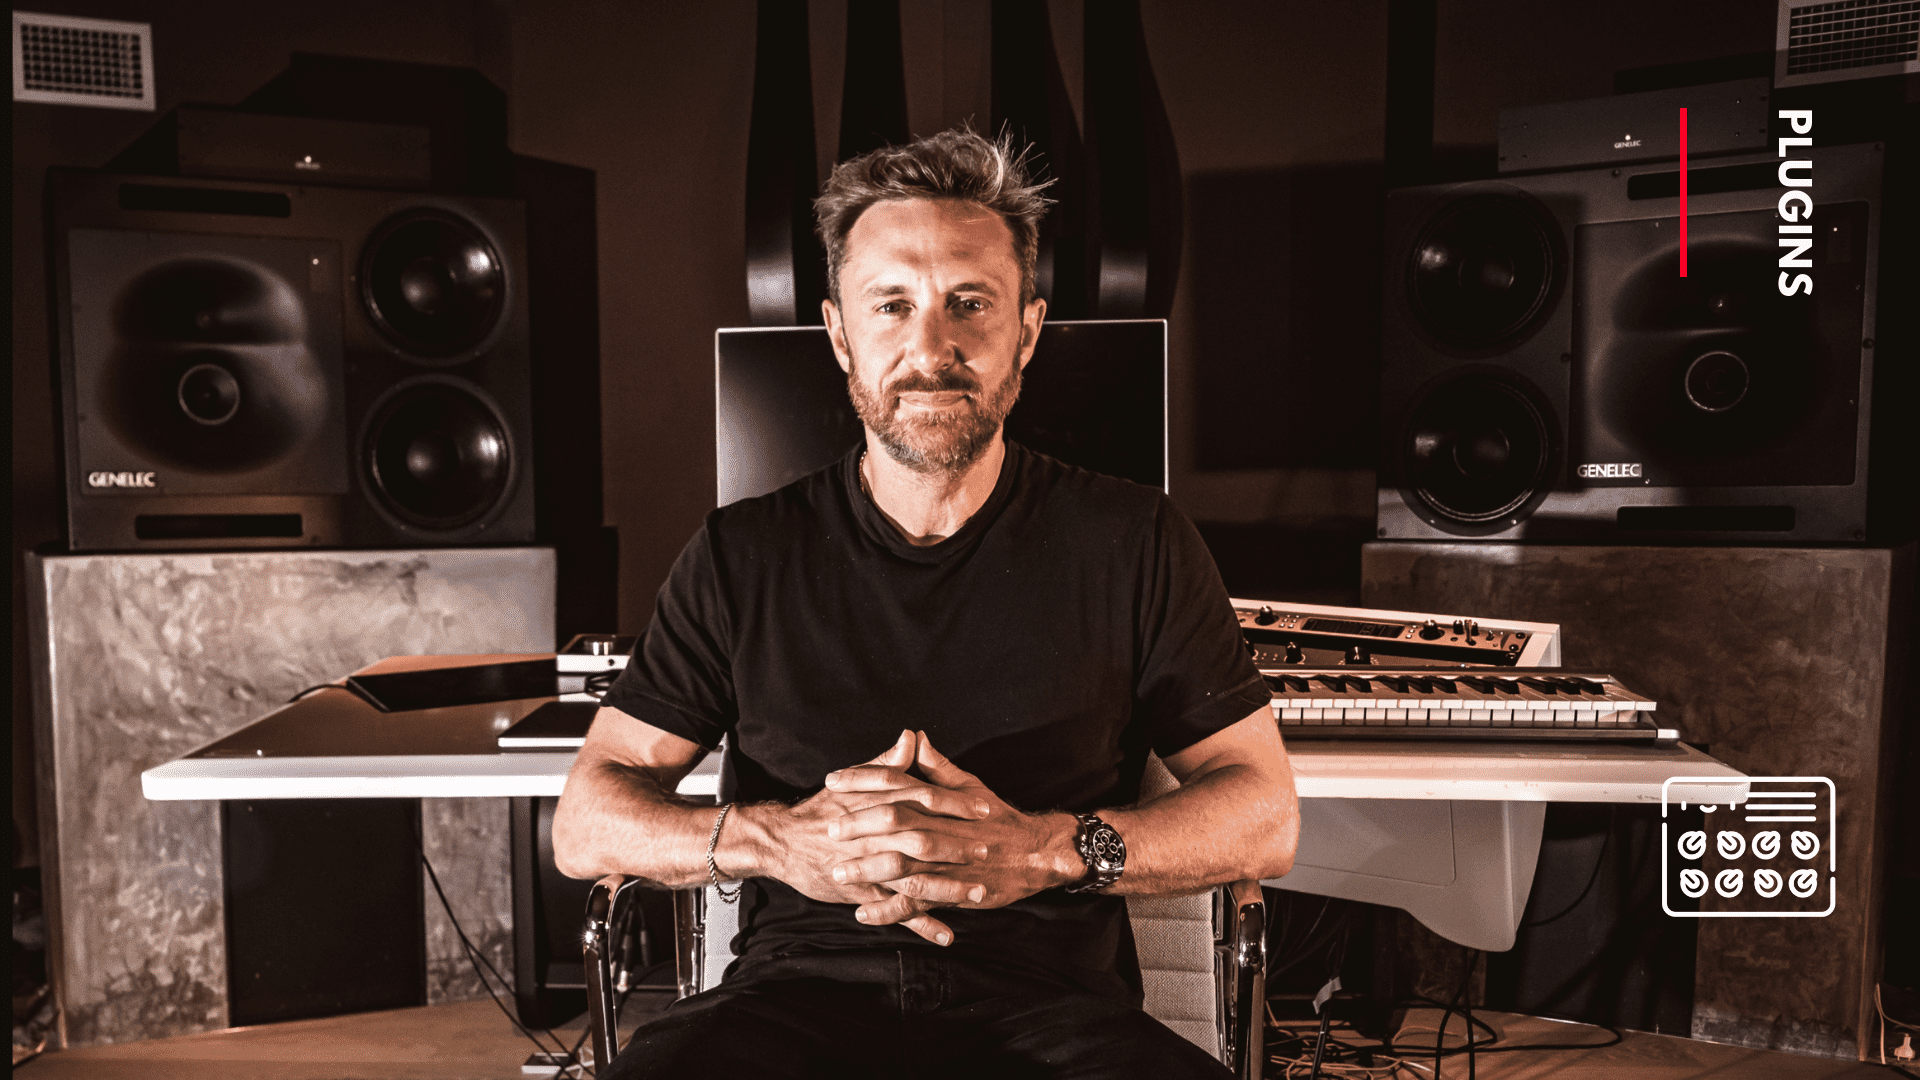 List of plugins currently used by David Guetta